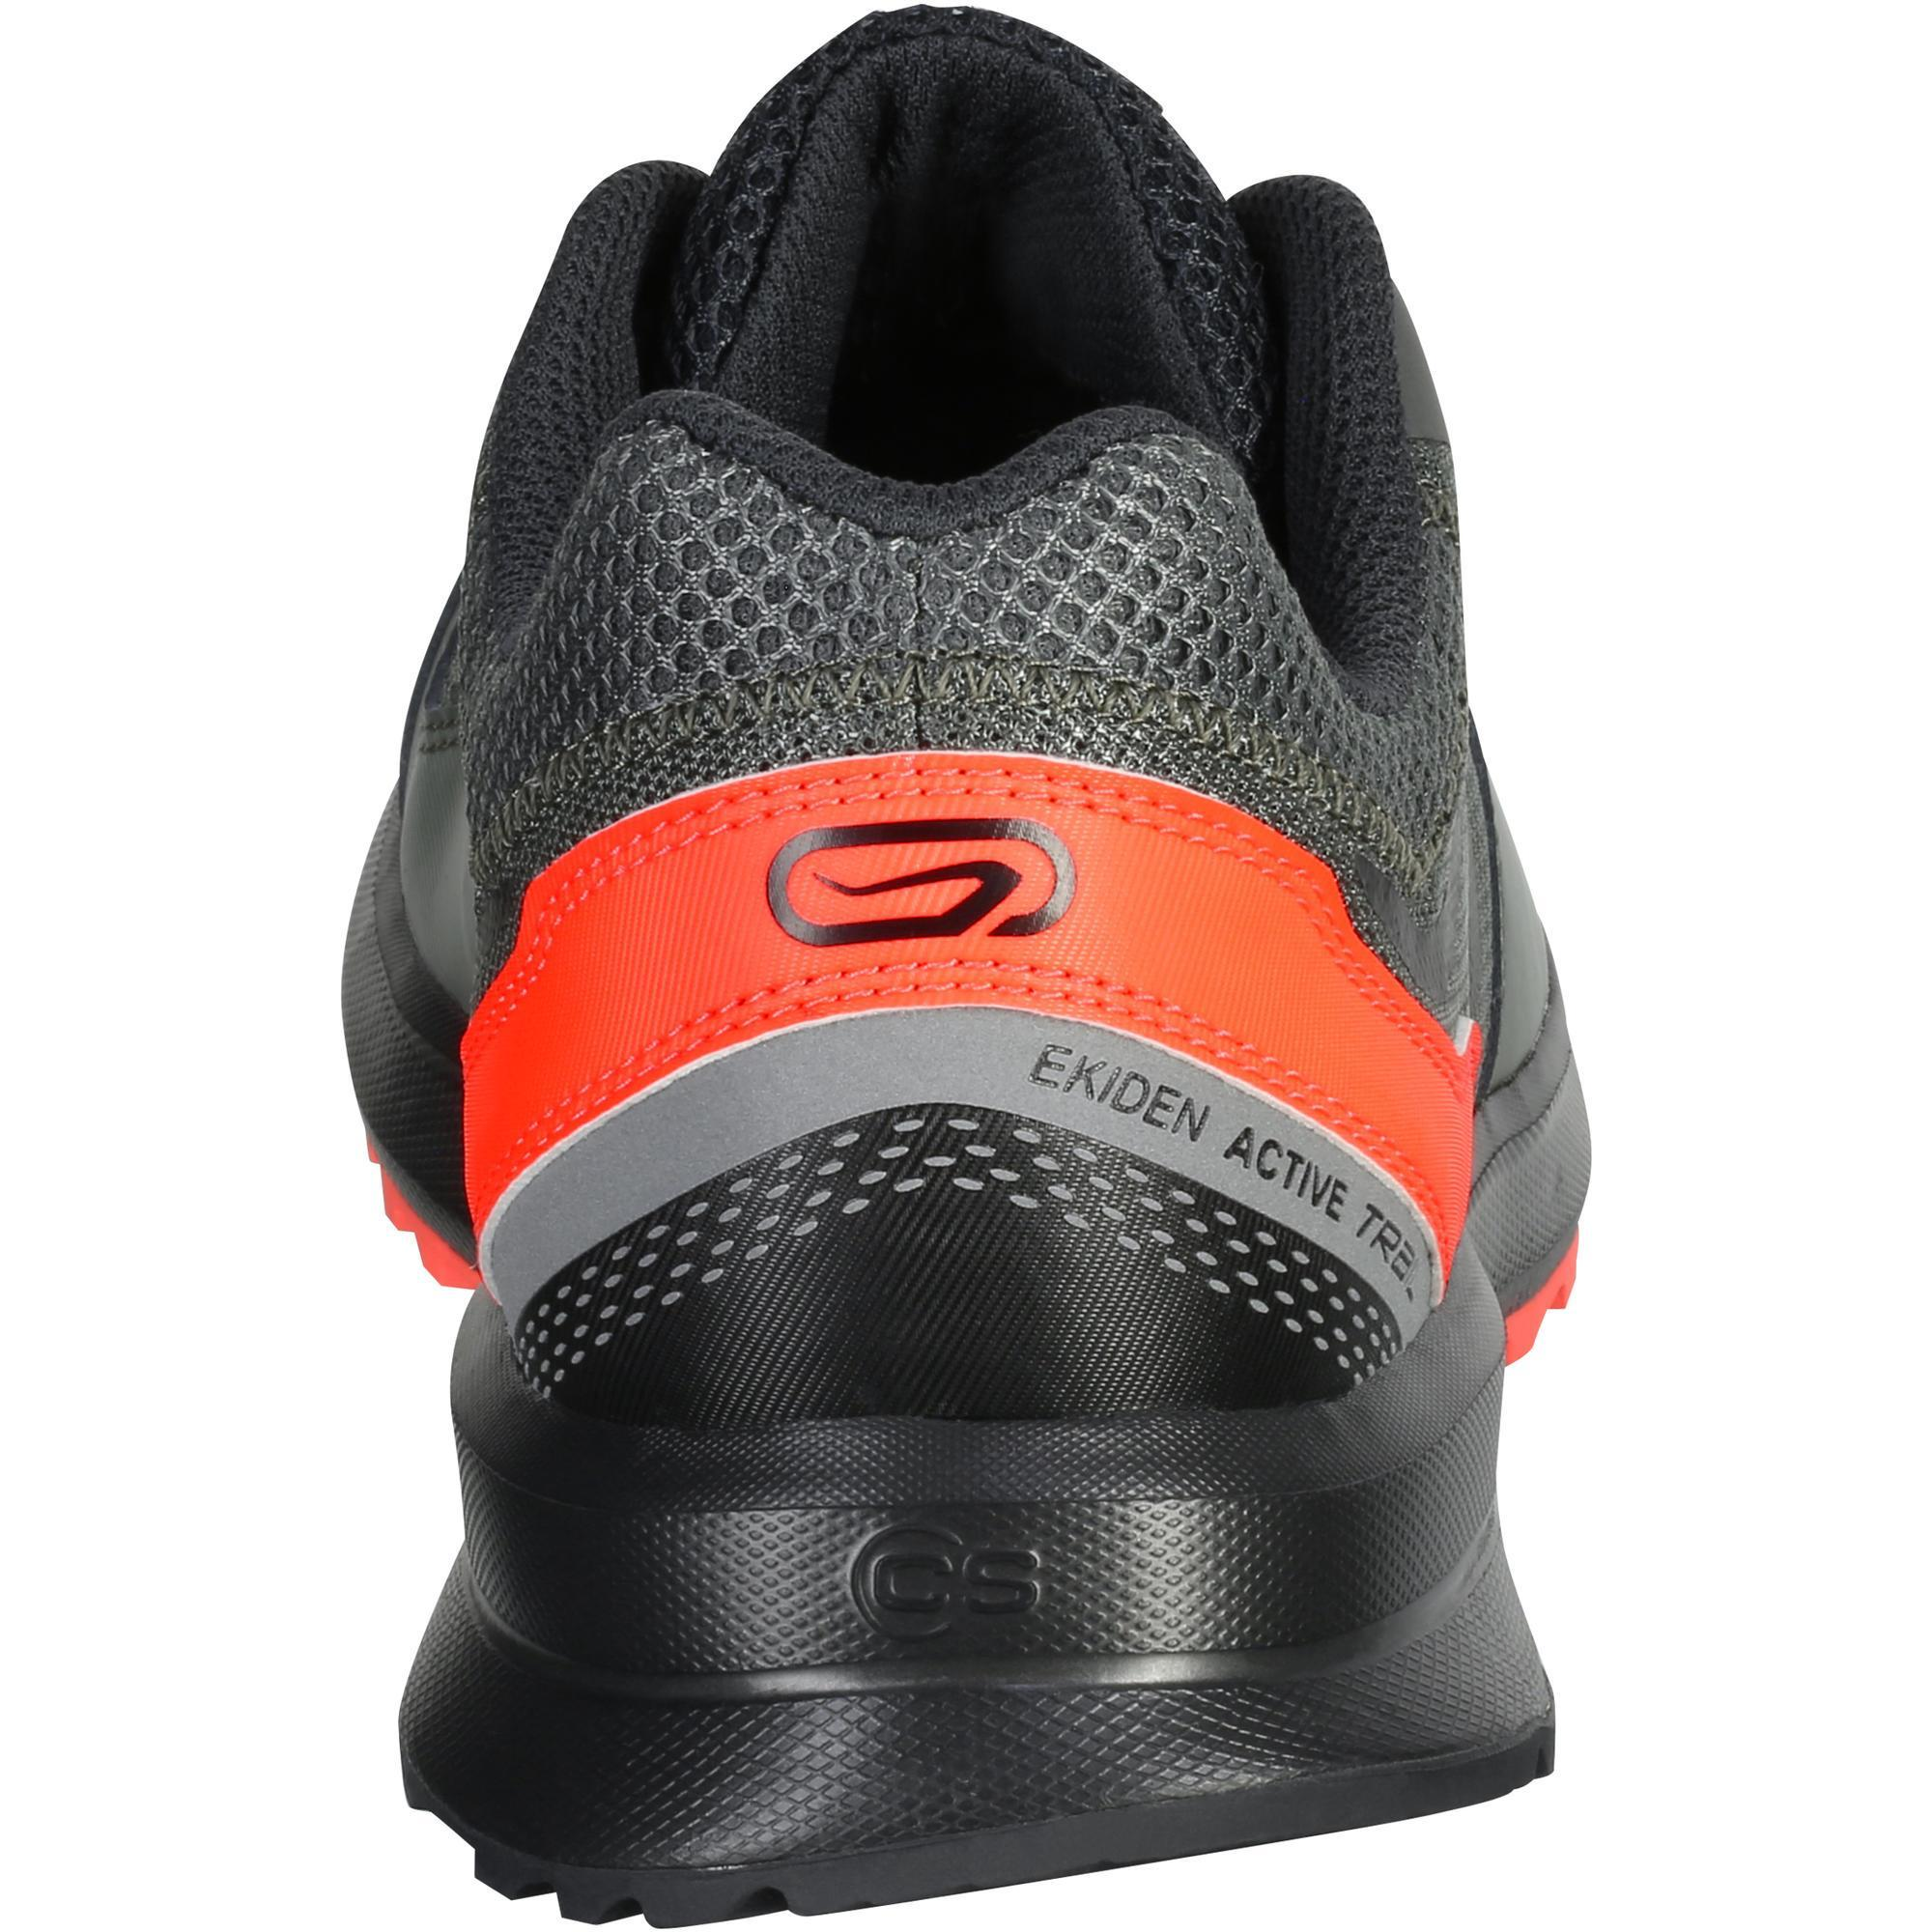 59b47a7cb25 Kalenji A Pied Run Decathlon Course Grip Chaussure Homme Active rYRFapqYg